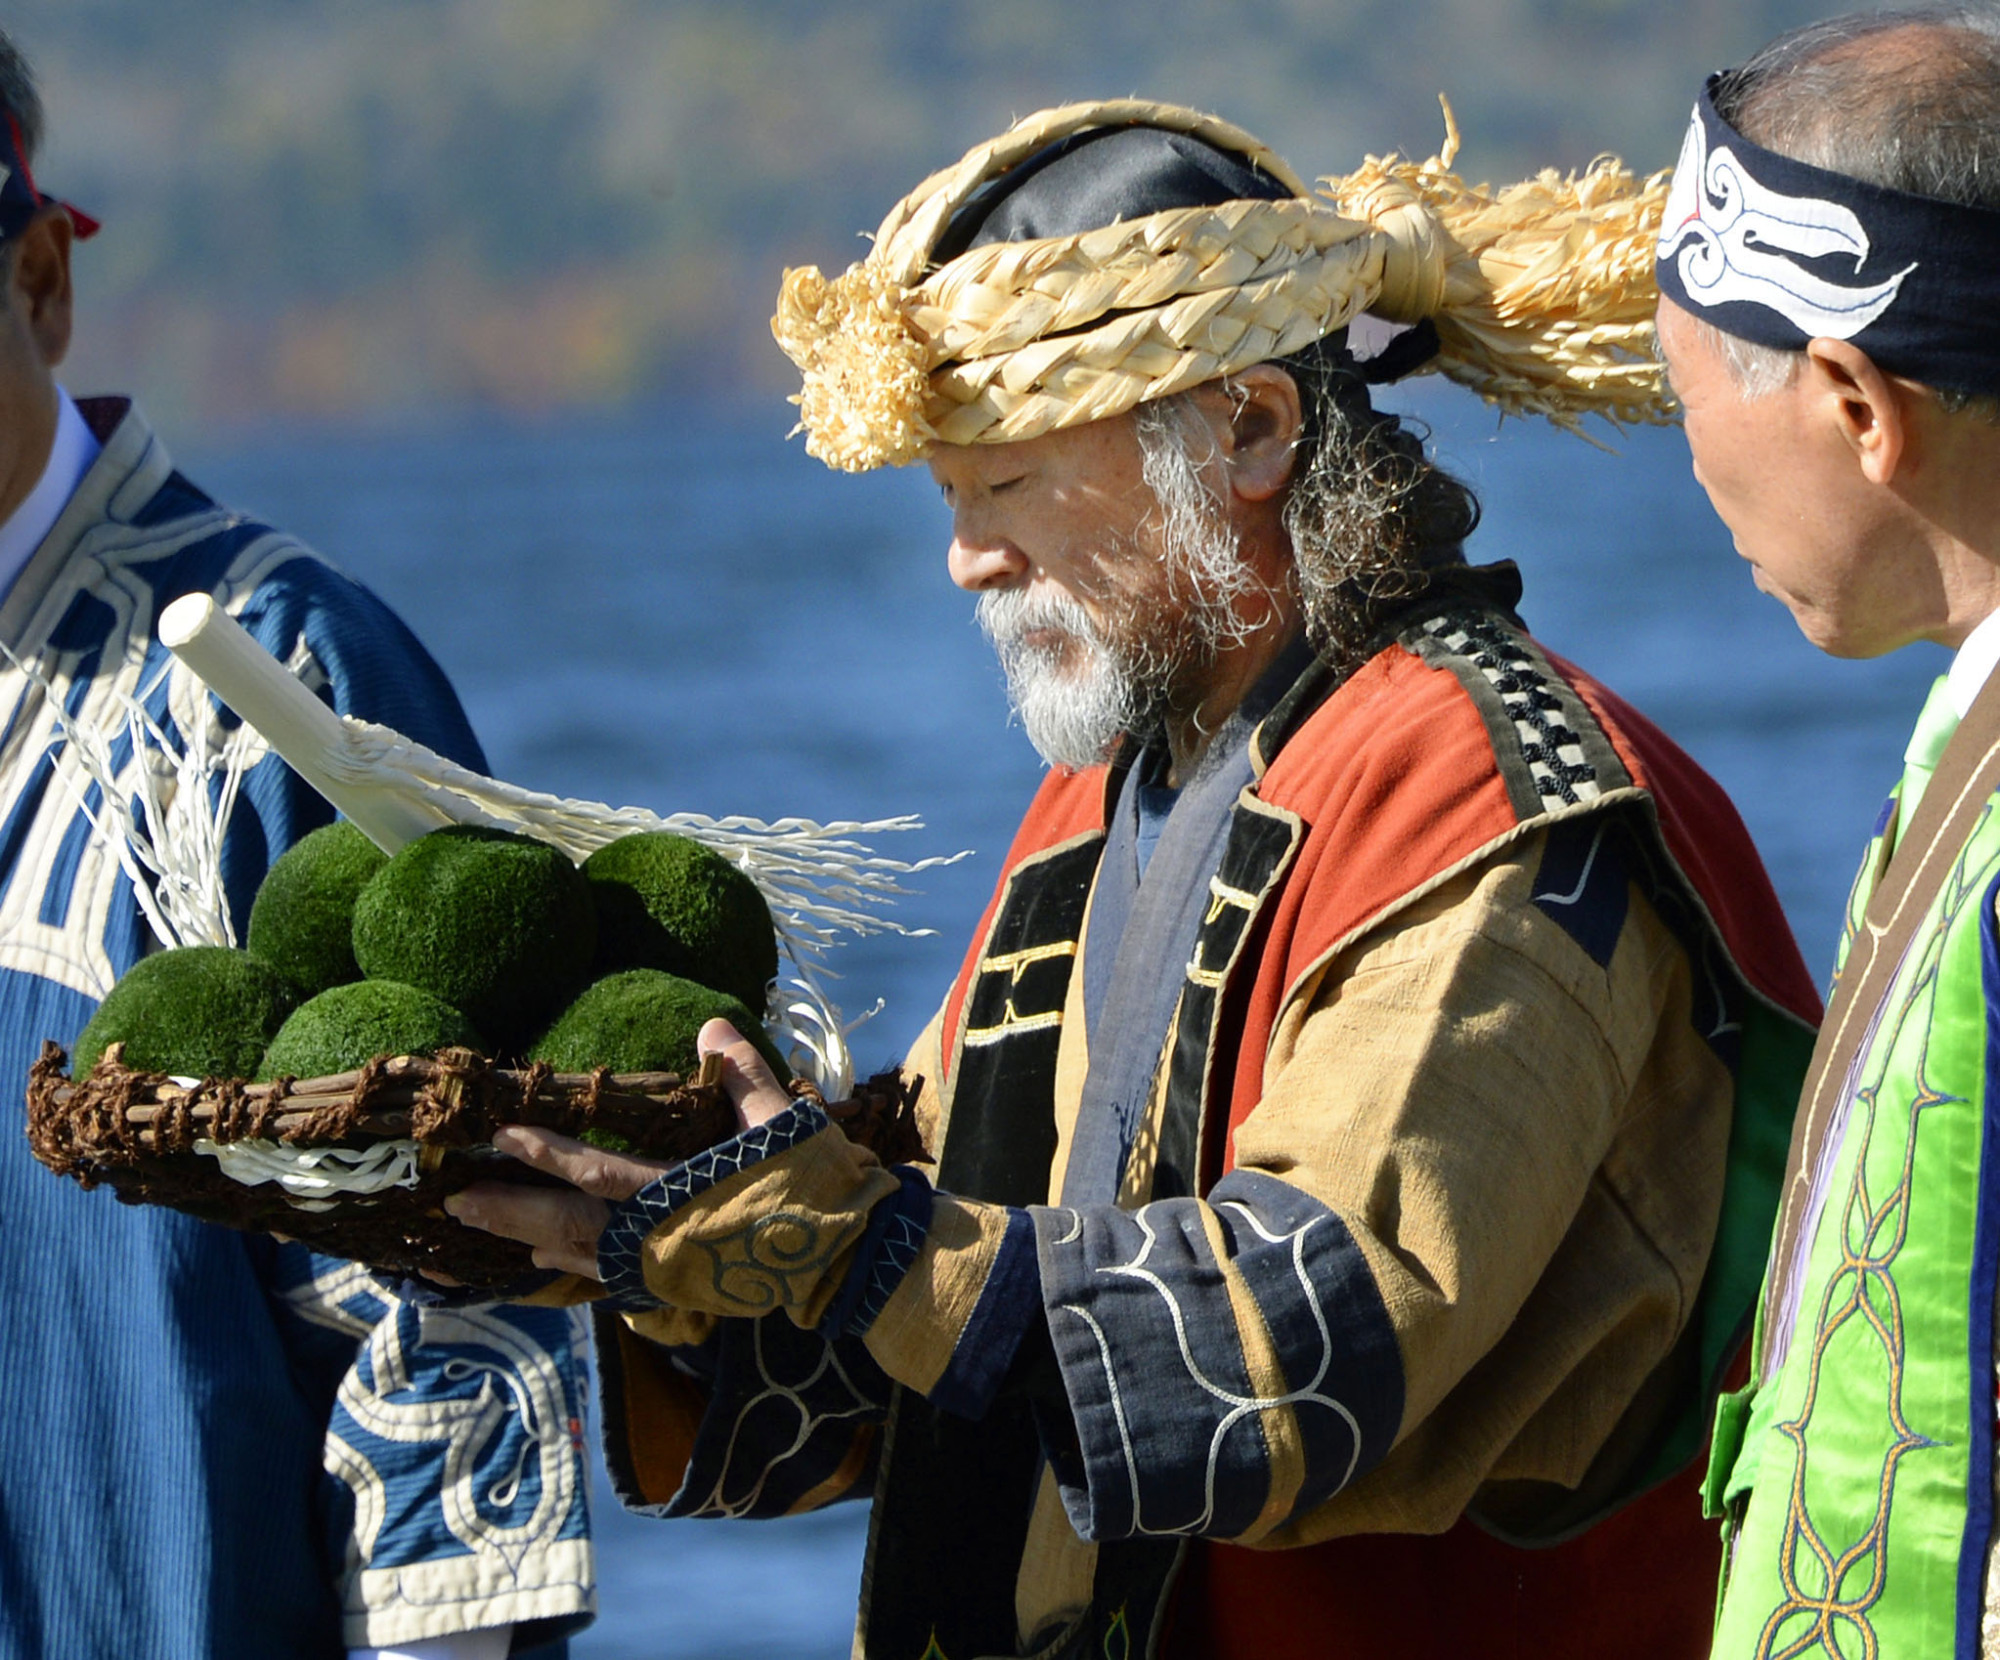 A man offers prayers during an Ainu ceremony to give thanks to nature at Lake Akan in Hokkaido in October 2015. The ceremony involves carefully returning marimo (rare algae balls from the lake's bottom) back to the lake, one by one. | KYODO